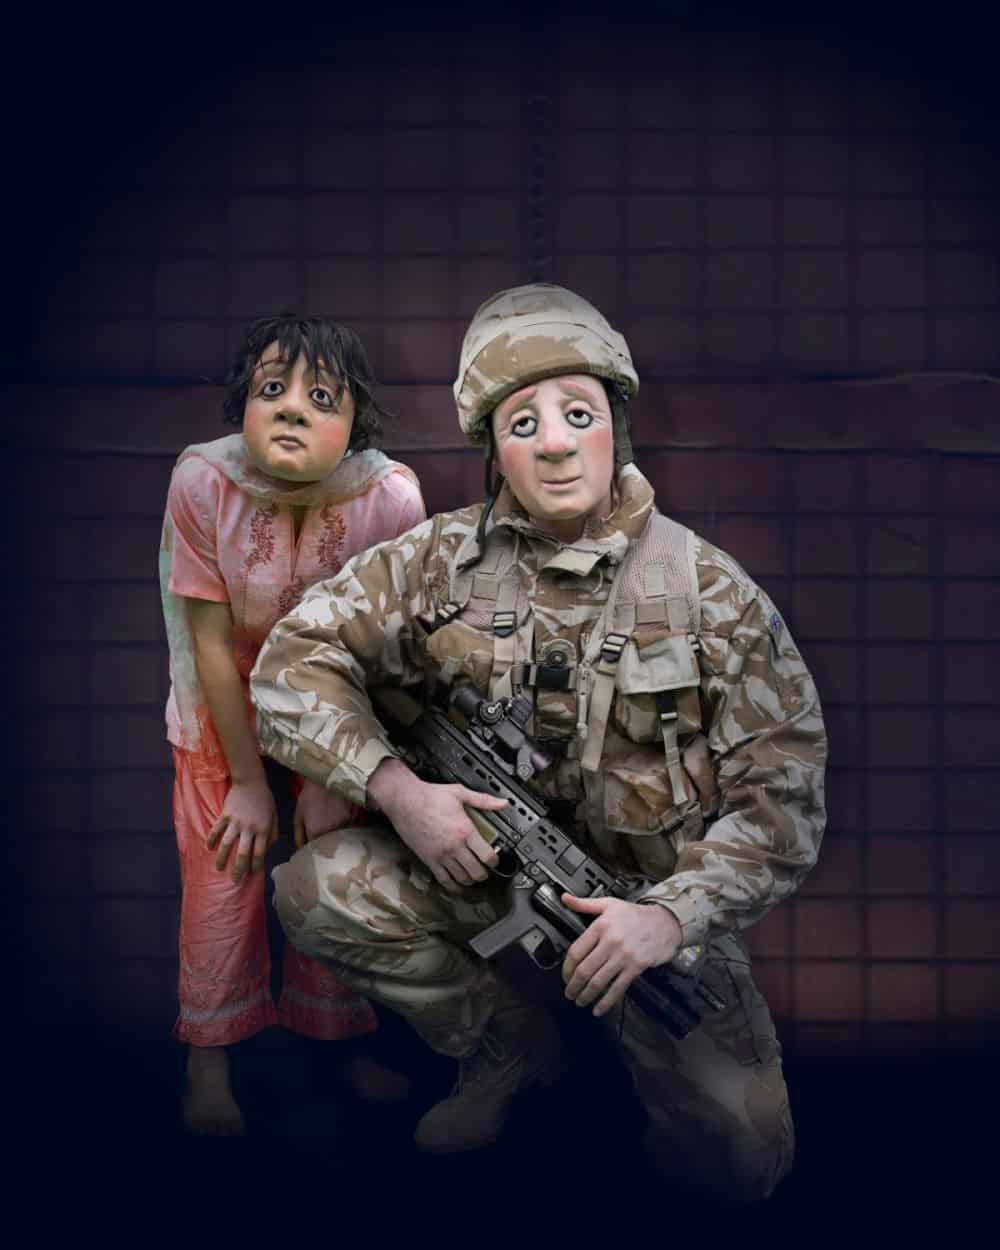 A-Brave-Face-soldier-and-child-High-Res-portrait-poster-Vamos-Theatre 1000wide